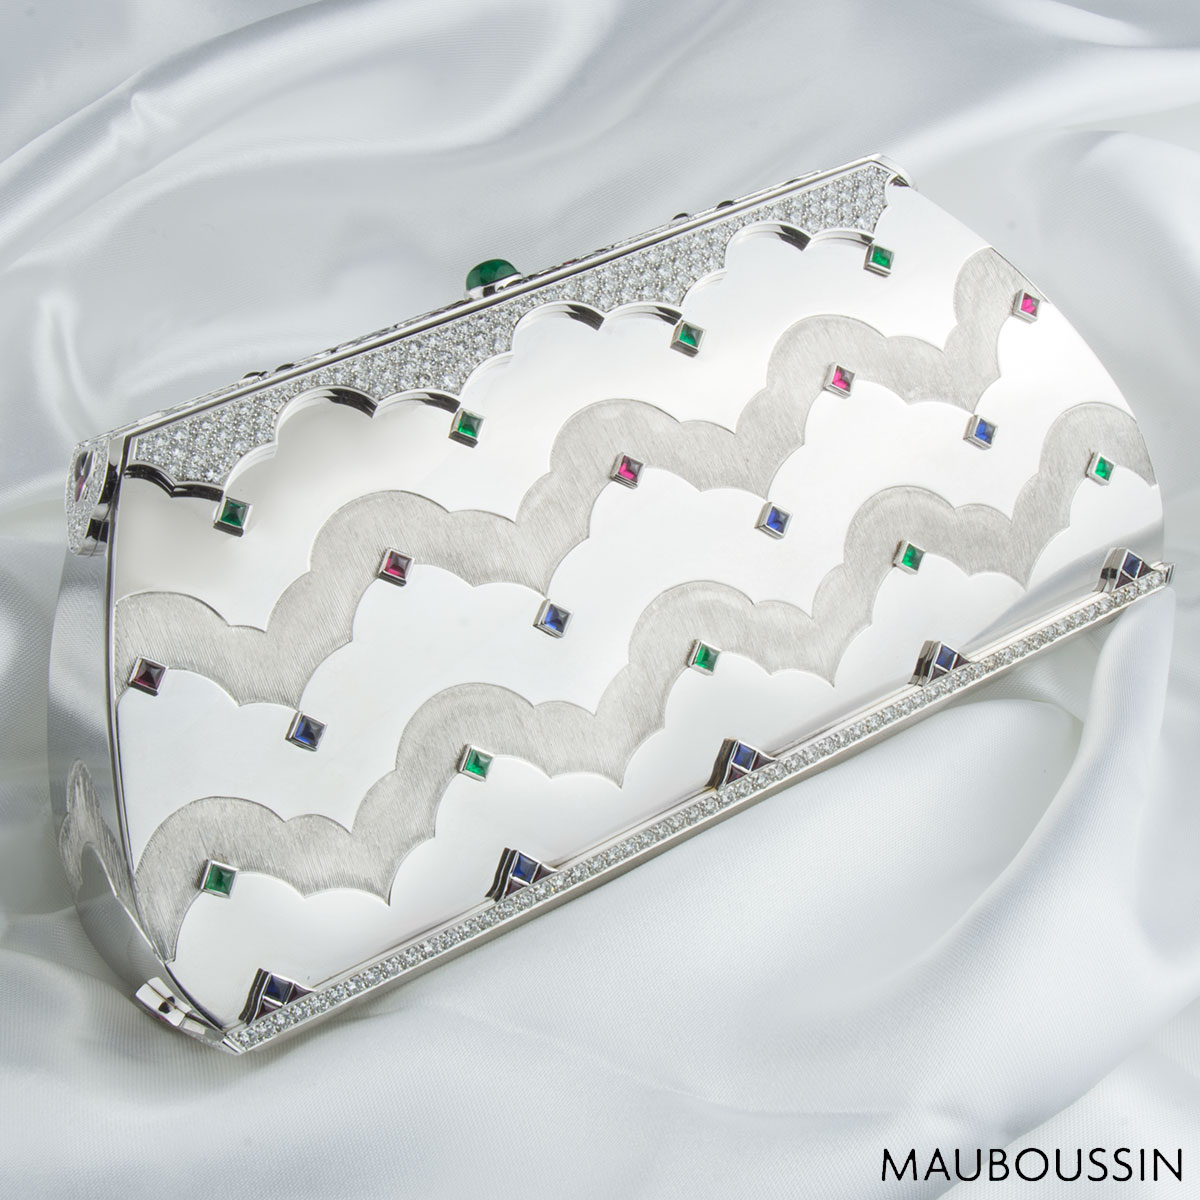 Mauboussin White Gold Diamond, Ruby, Sapphire & Chrysophrase Clutch Bag